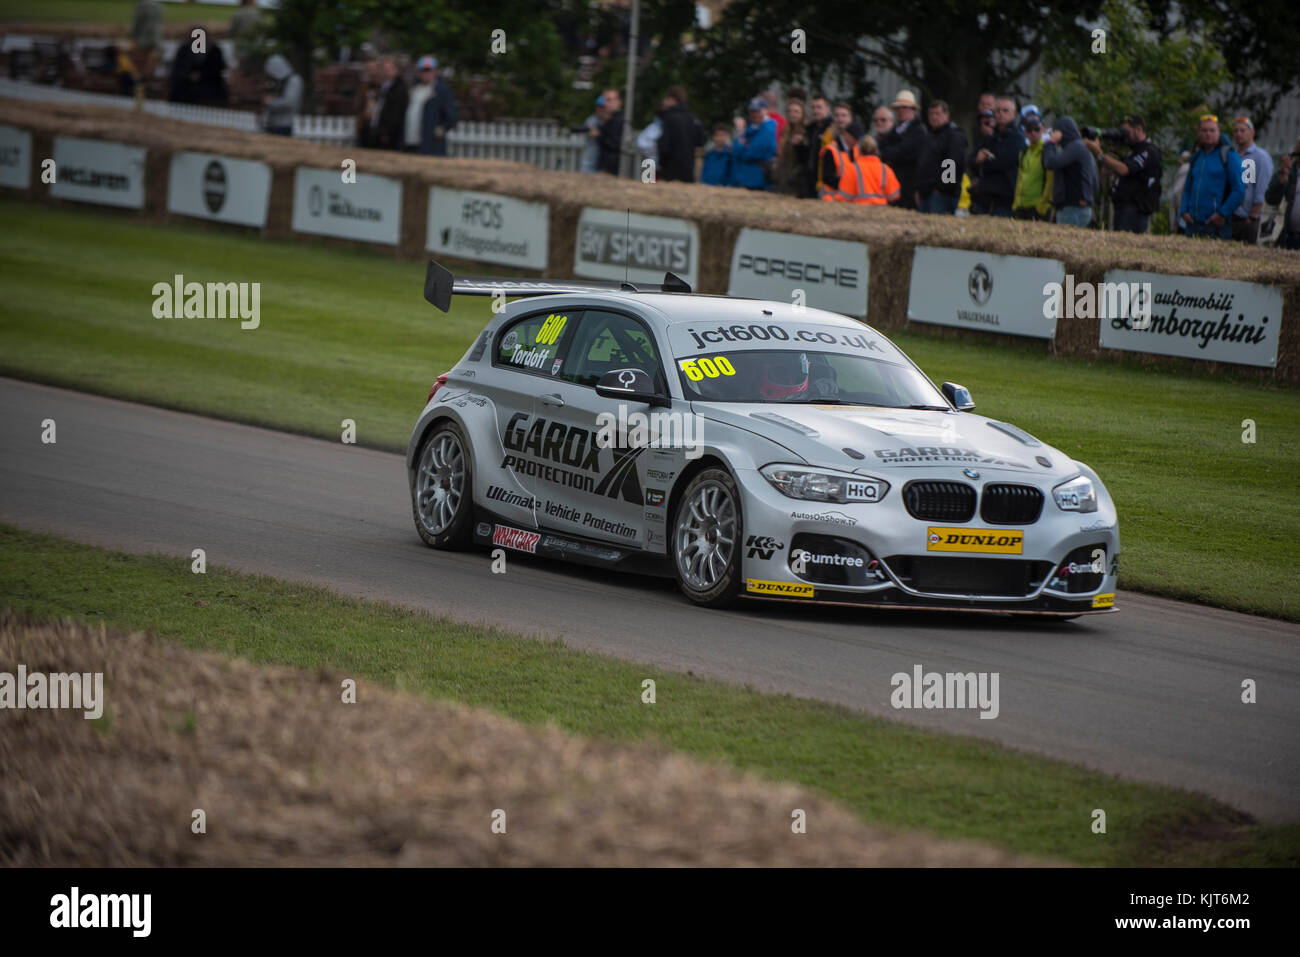 Event At the Festival of Speed Goodwood 2016 annual meeting of old and new Racing vehicles - Stock Image